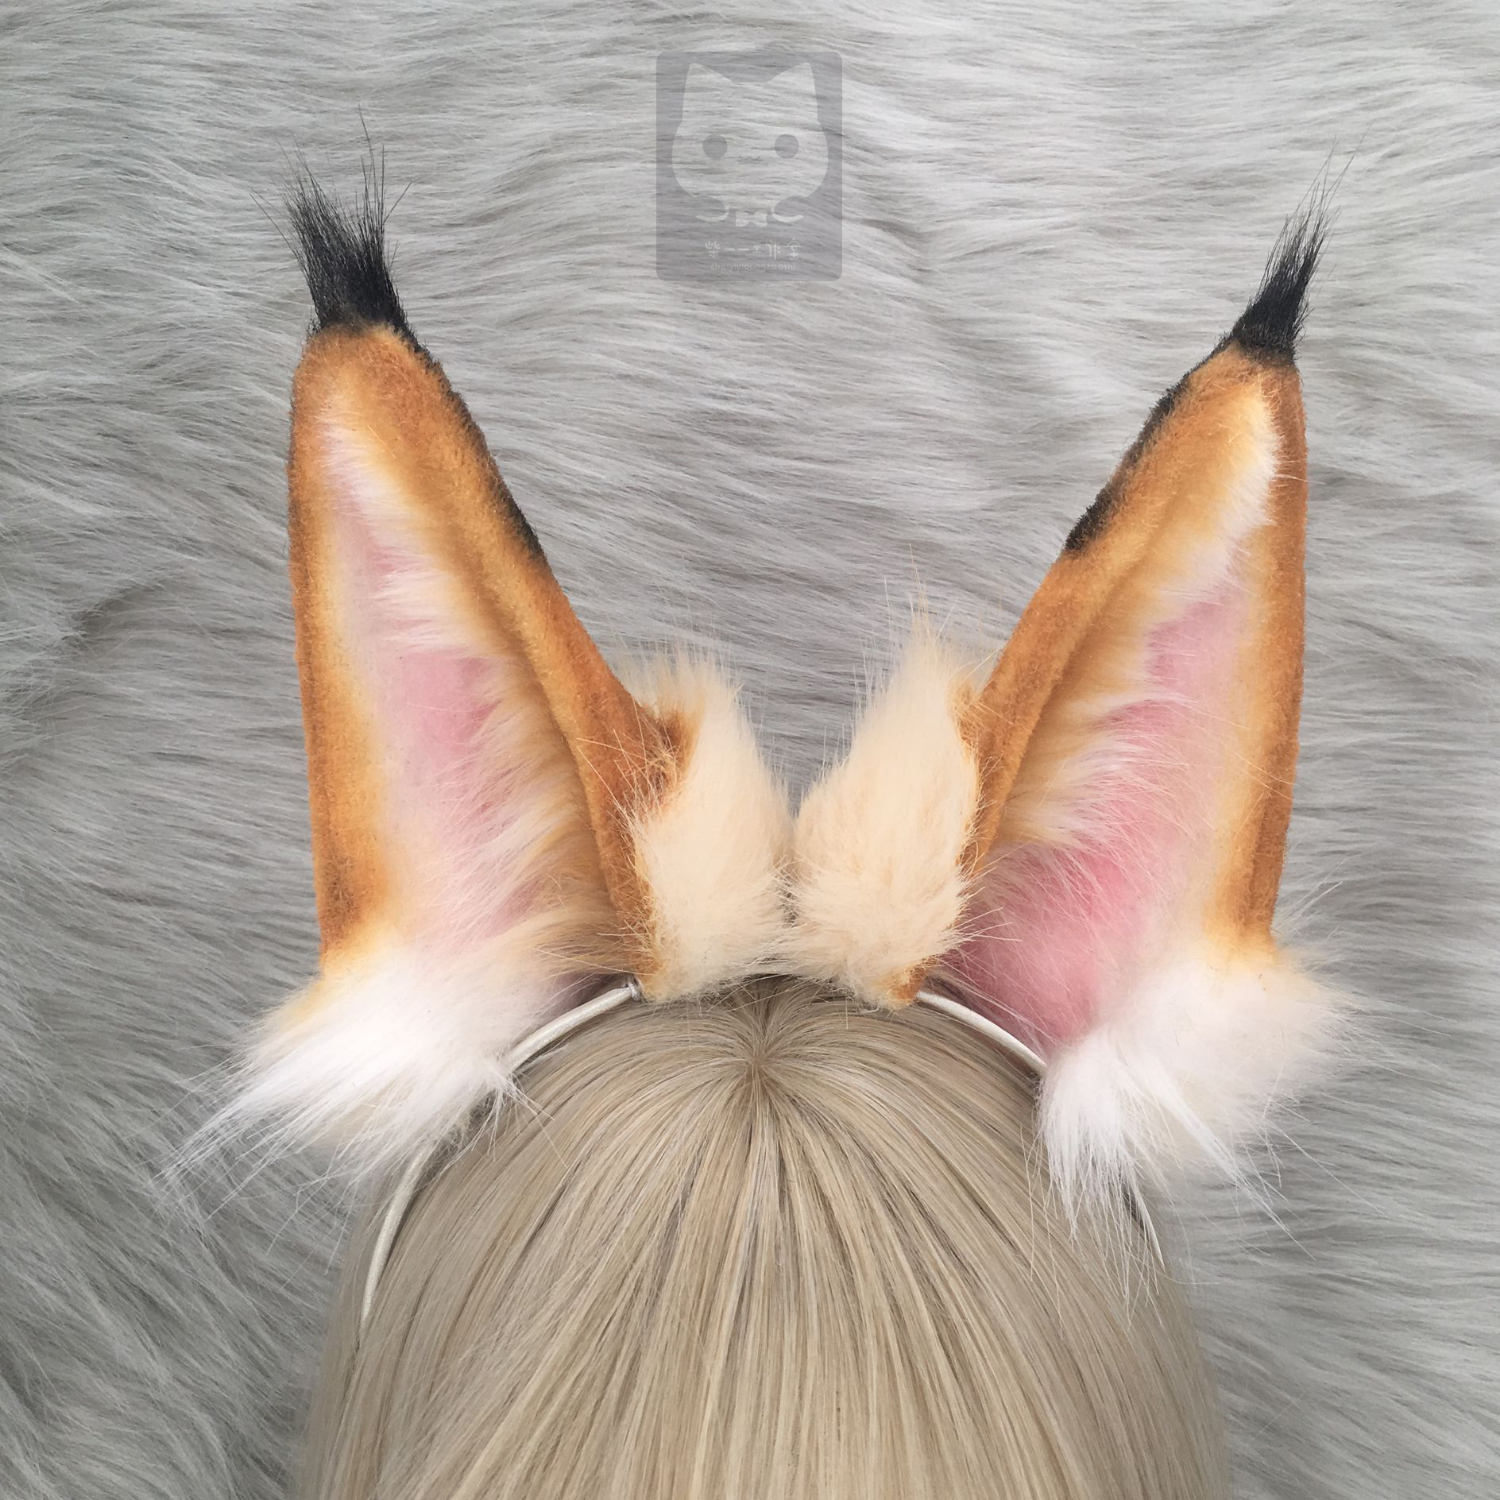 MMGG New Leptailurus serval Schreber Animal style Ears hairhoop for anime lolita cosplay costume accessories